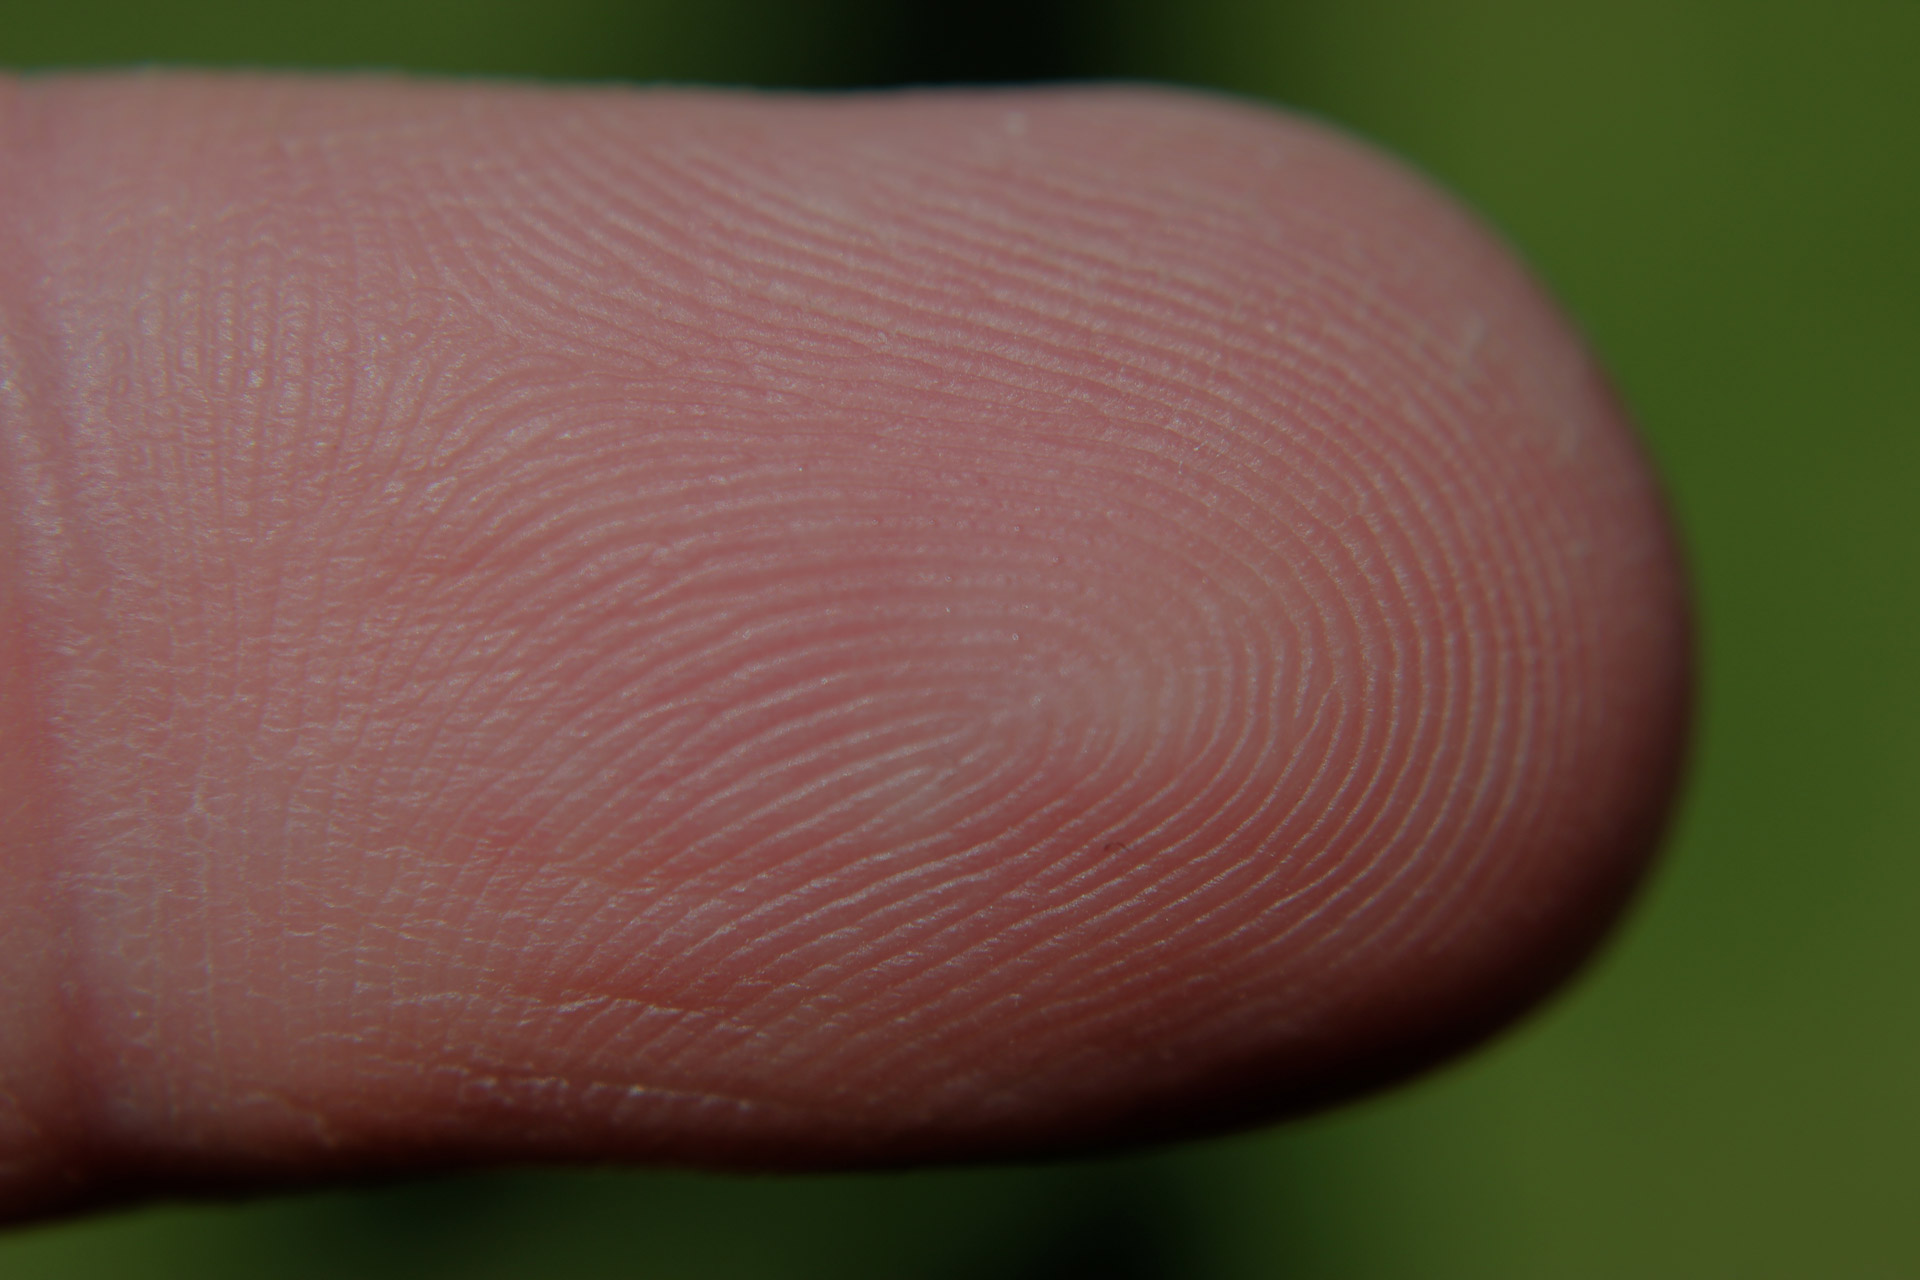 Why Do People Have Fingerprints?